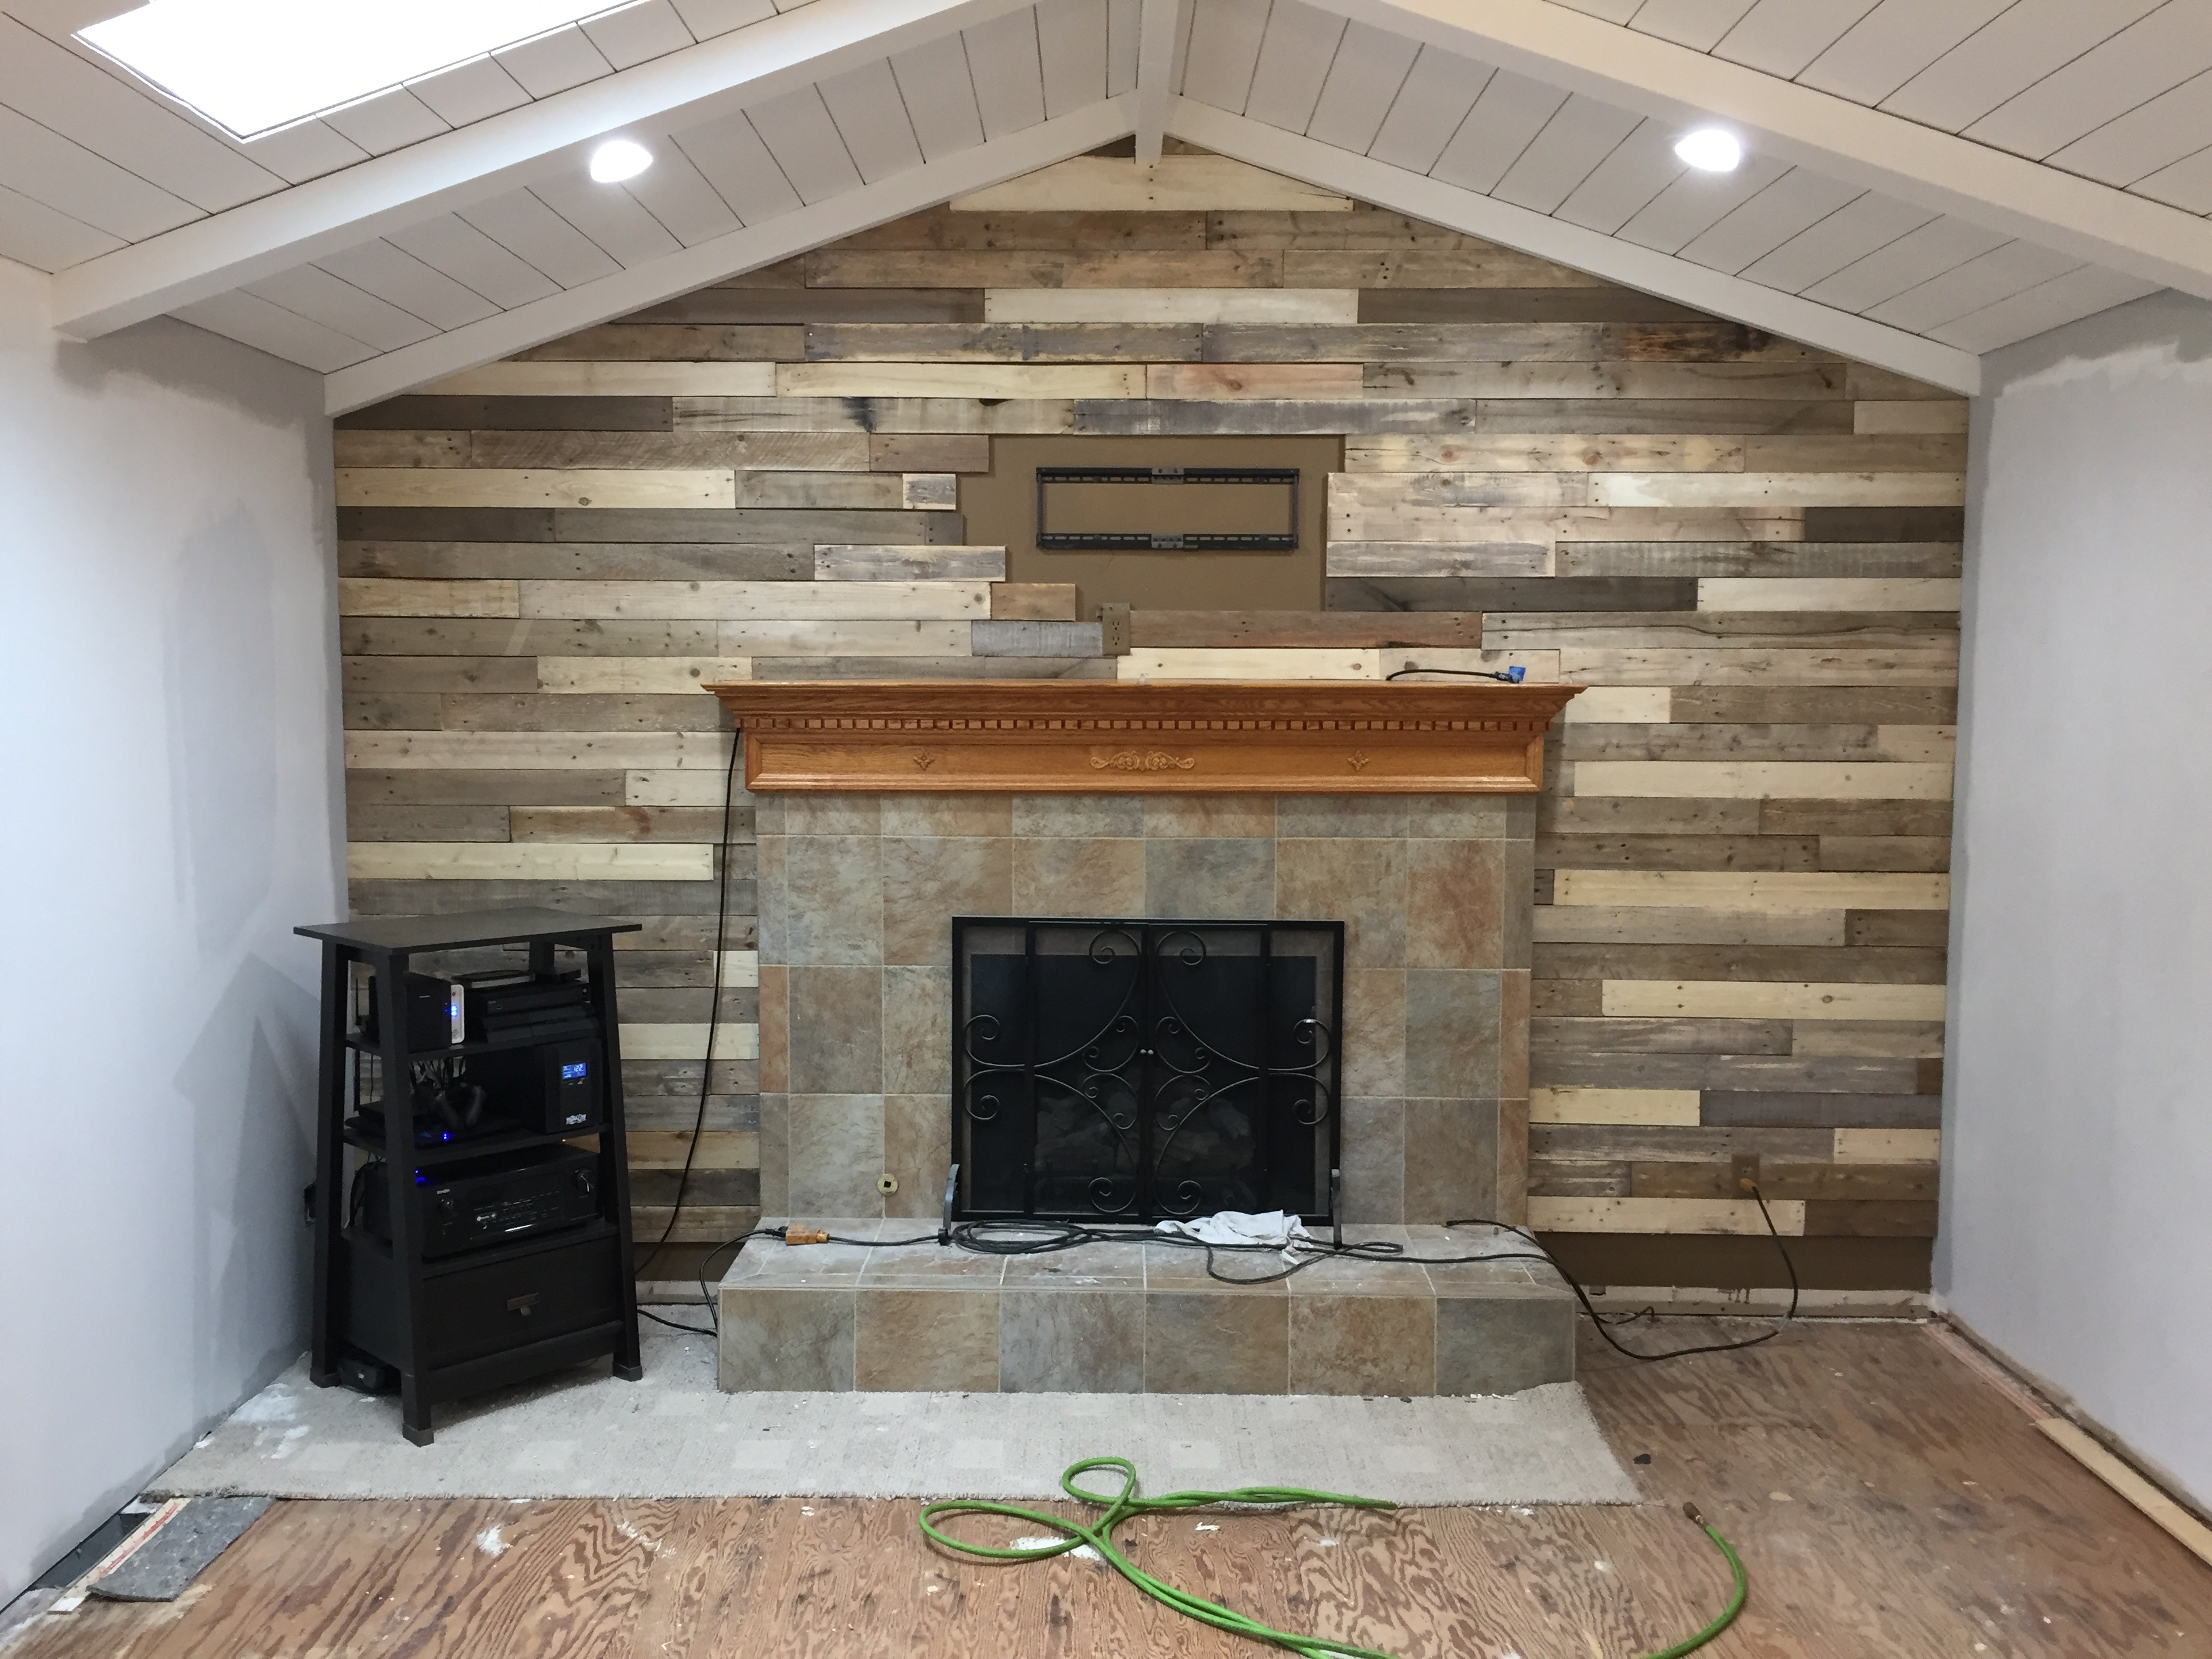 Building wood pallet wall and painting fireplace mantel & tile surround